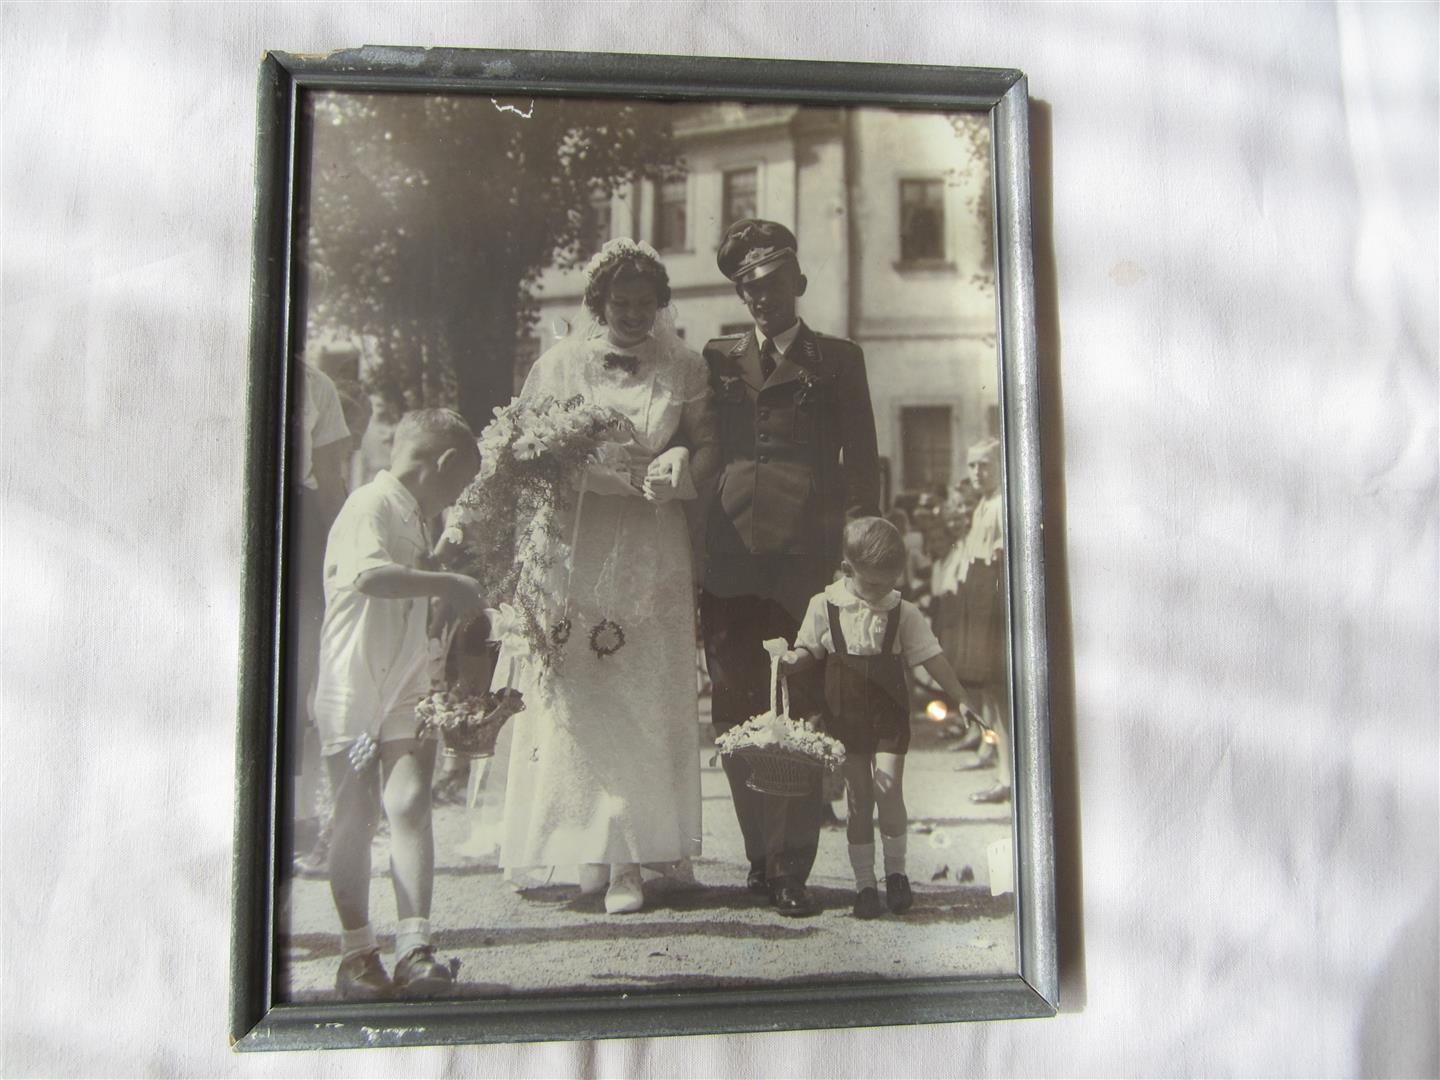 WW2 WL NCO's Wedding Photo